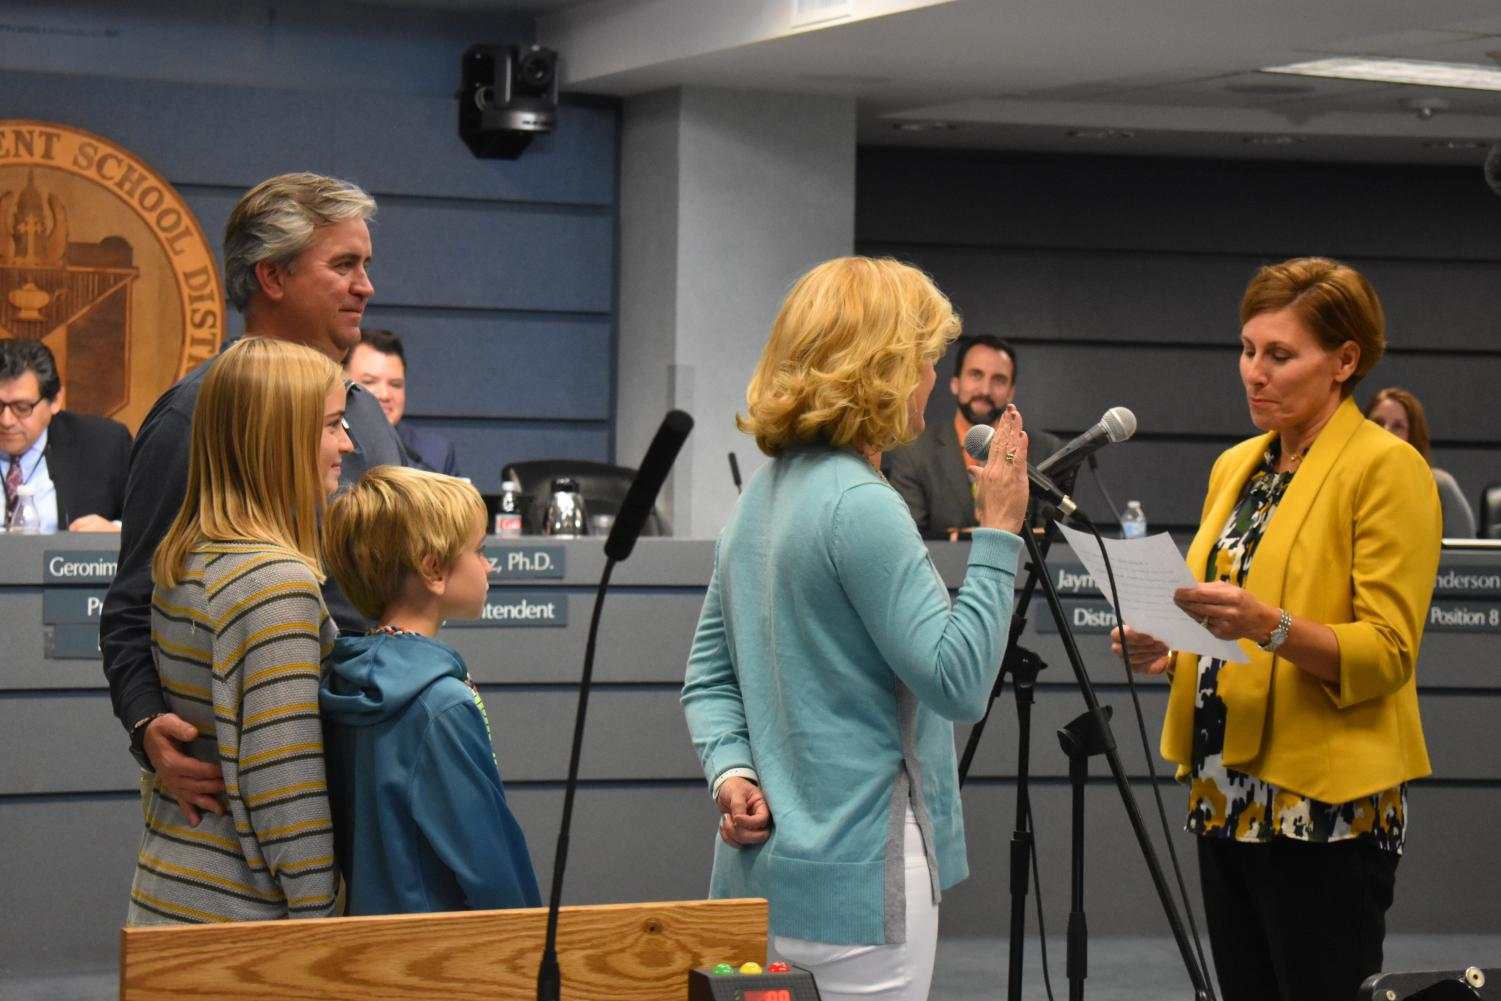 Kristin Ashy, who recently was elected to the Austin ISD Board of Trustees representing District 4, is sworn in by exiting District 4 representative Julie Cowan while her husband and children watch from behind. Photo by Olivia Watts.